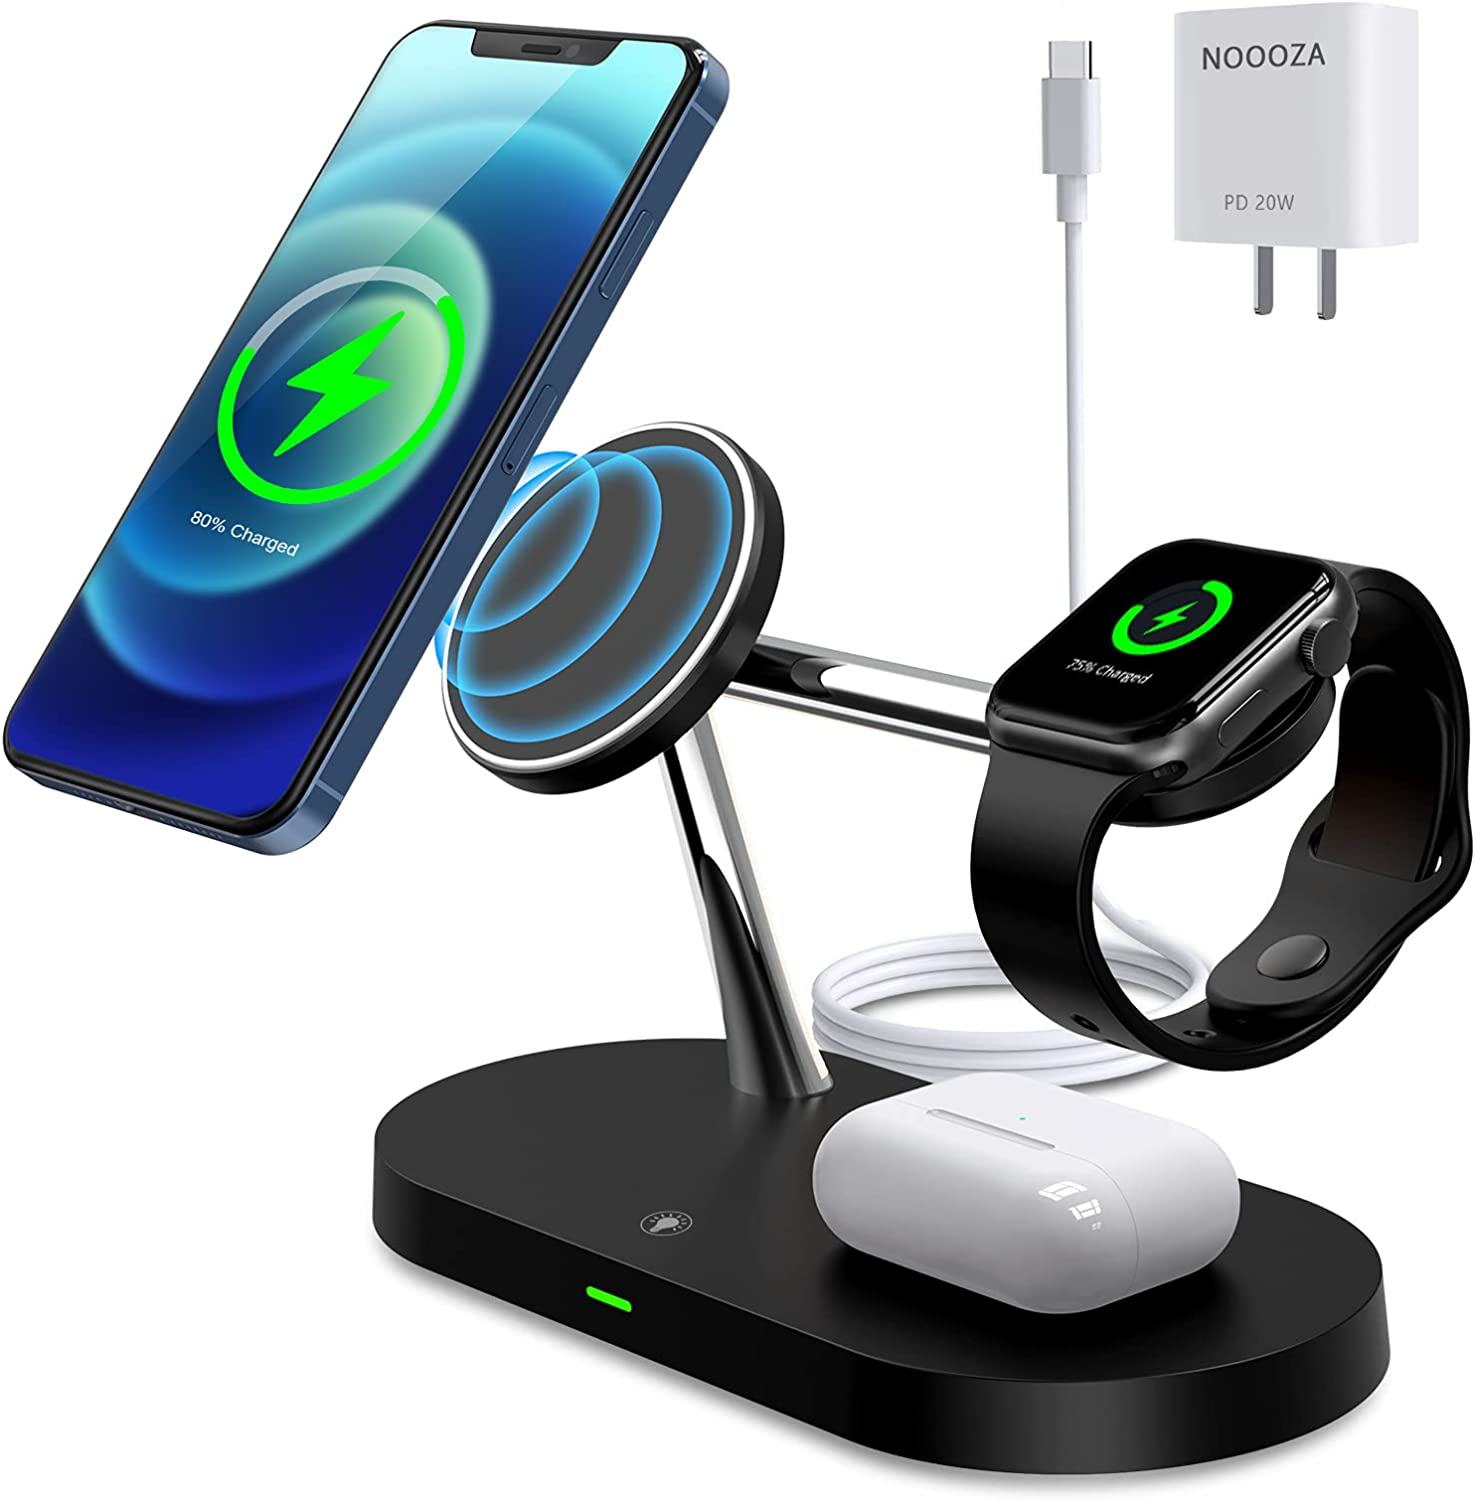 NOOOZA 3 in 1 Magnetic Wireless Charger Fast Charging Station Dock with 20 W QC3.0 Adapter Compatible with iPhone 12/12 Pro Max/Mini/AirPods Pro/AirPods 2 Magsafe Case iwatch Series, Black